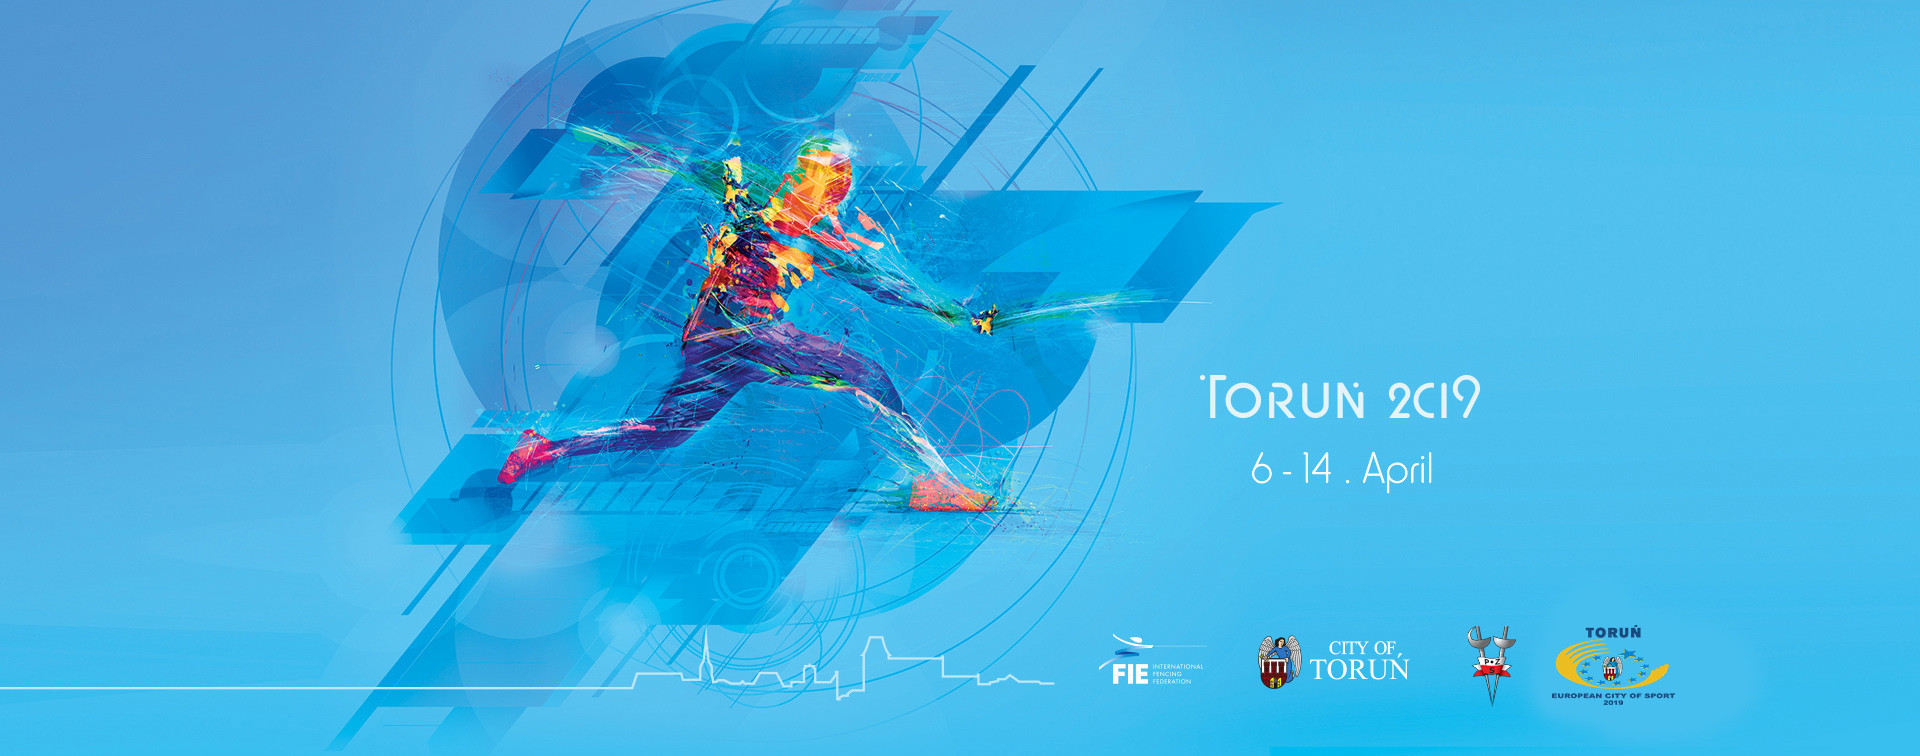 Toruń ready to host Junior and Cadet World Fencing Championships